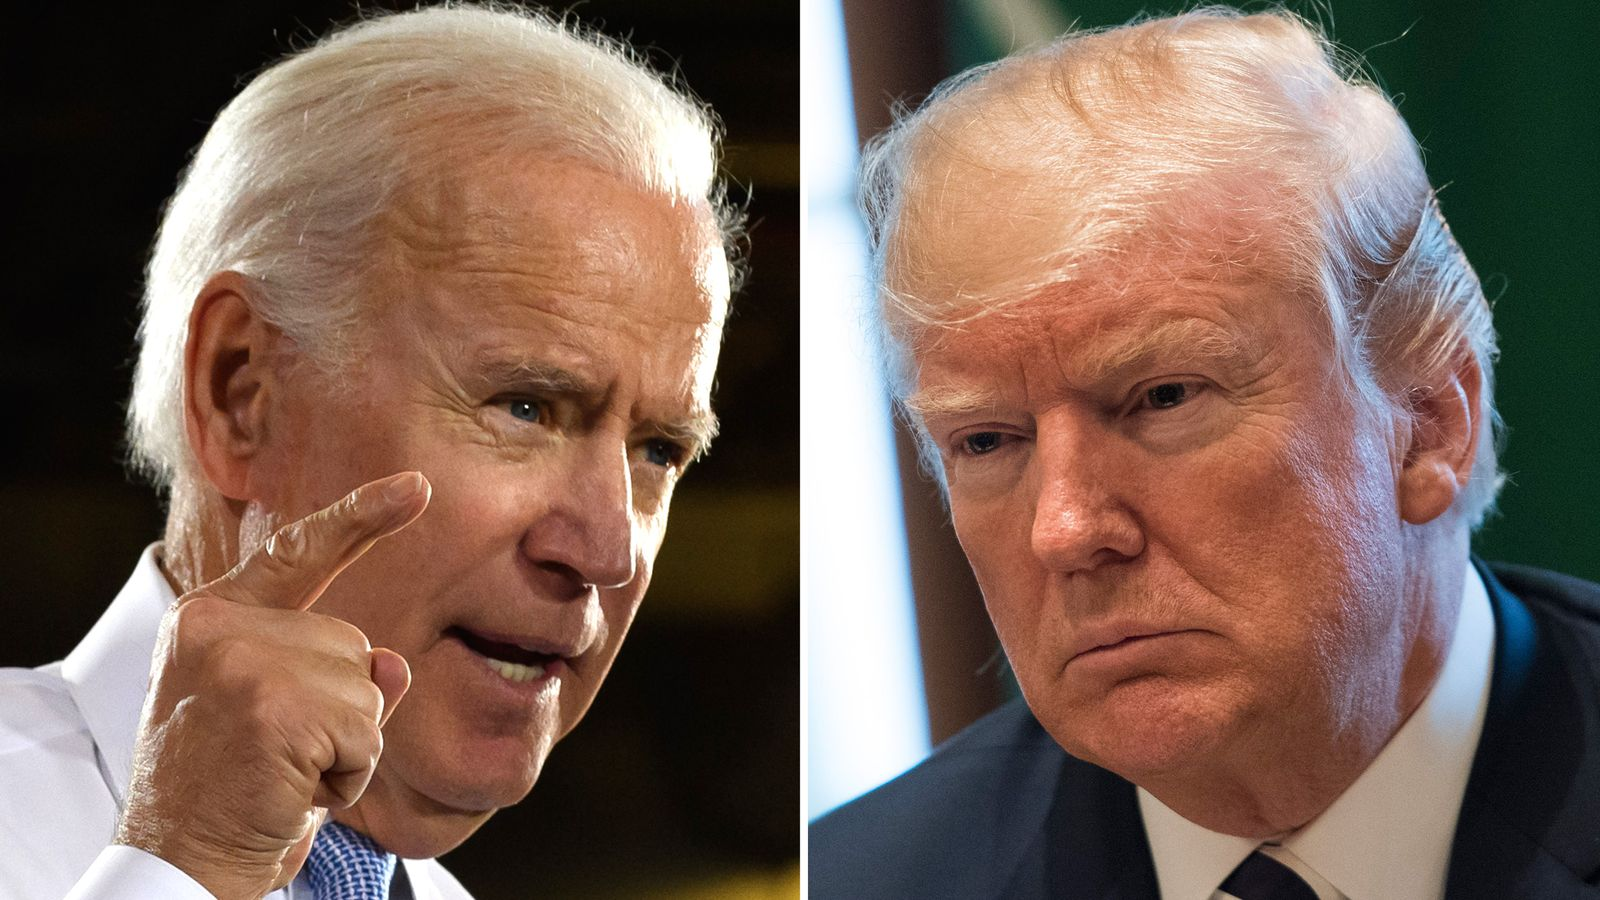 Joe Biden beating Trump in the polls - but will America stick with 'the devil it knows'?